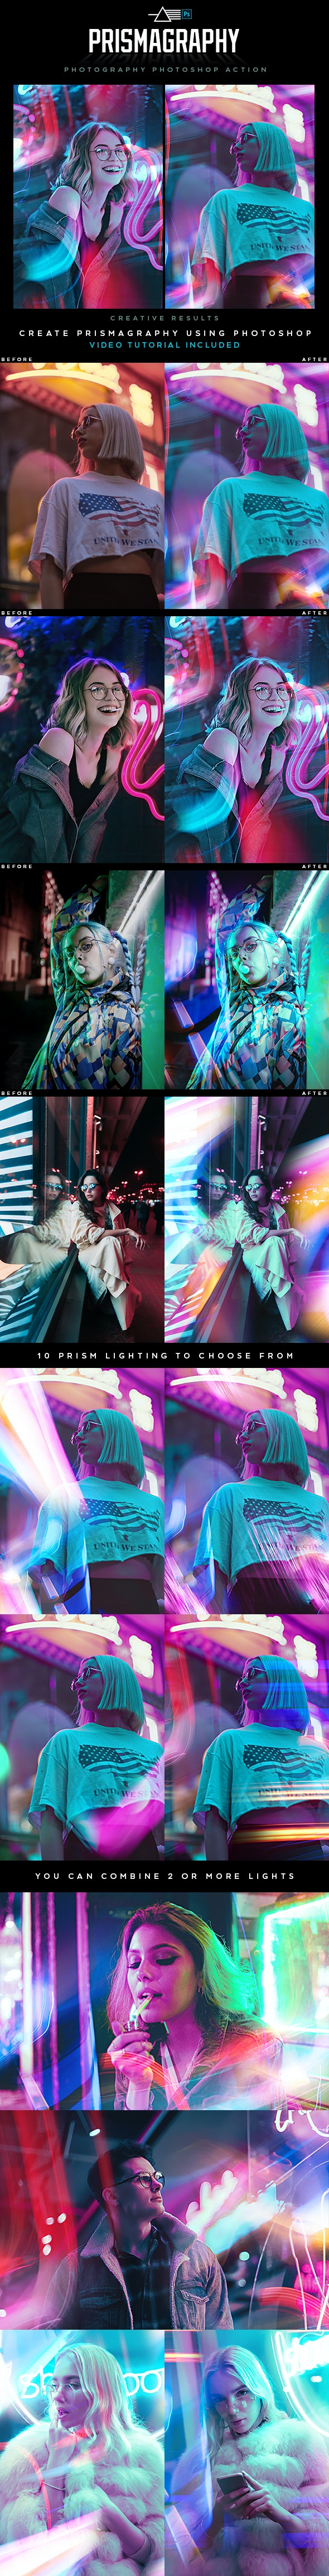 Prismagraphy Photoshop Action - Photo Effects Actions